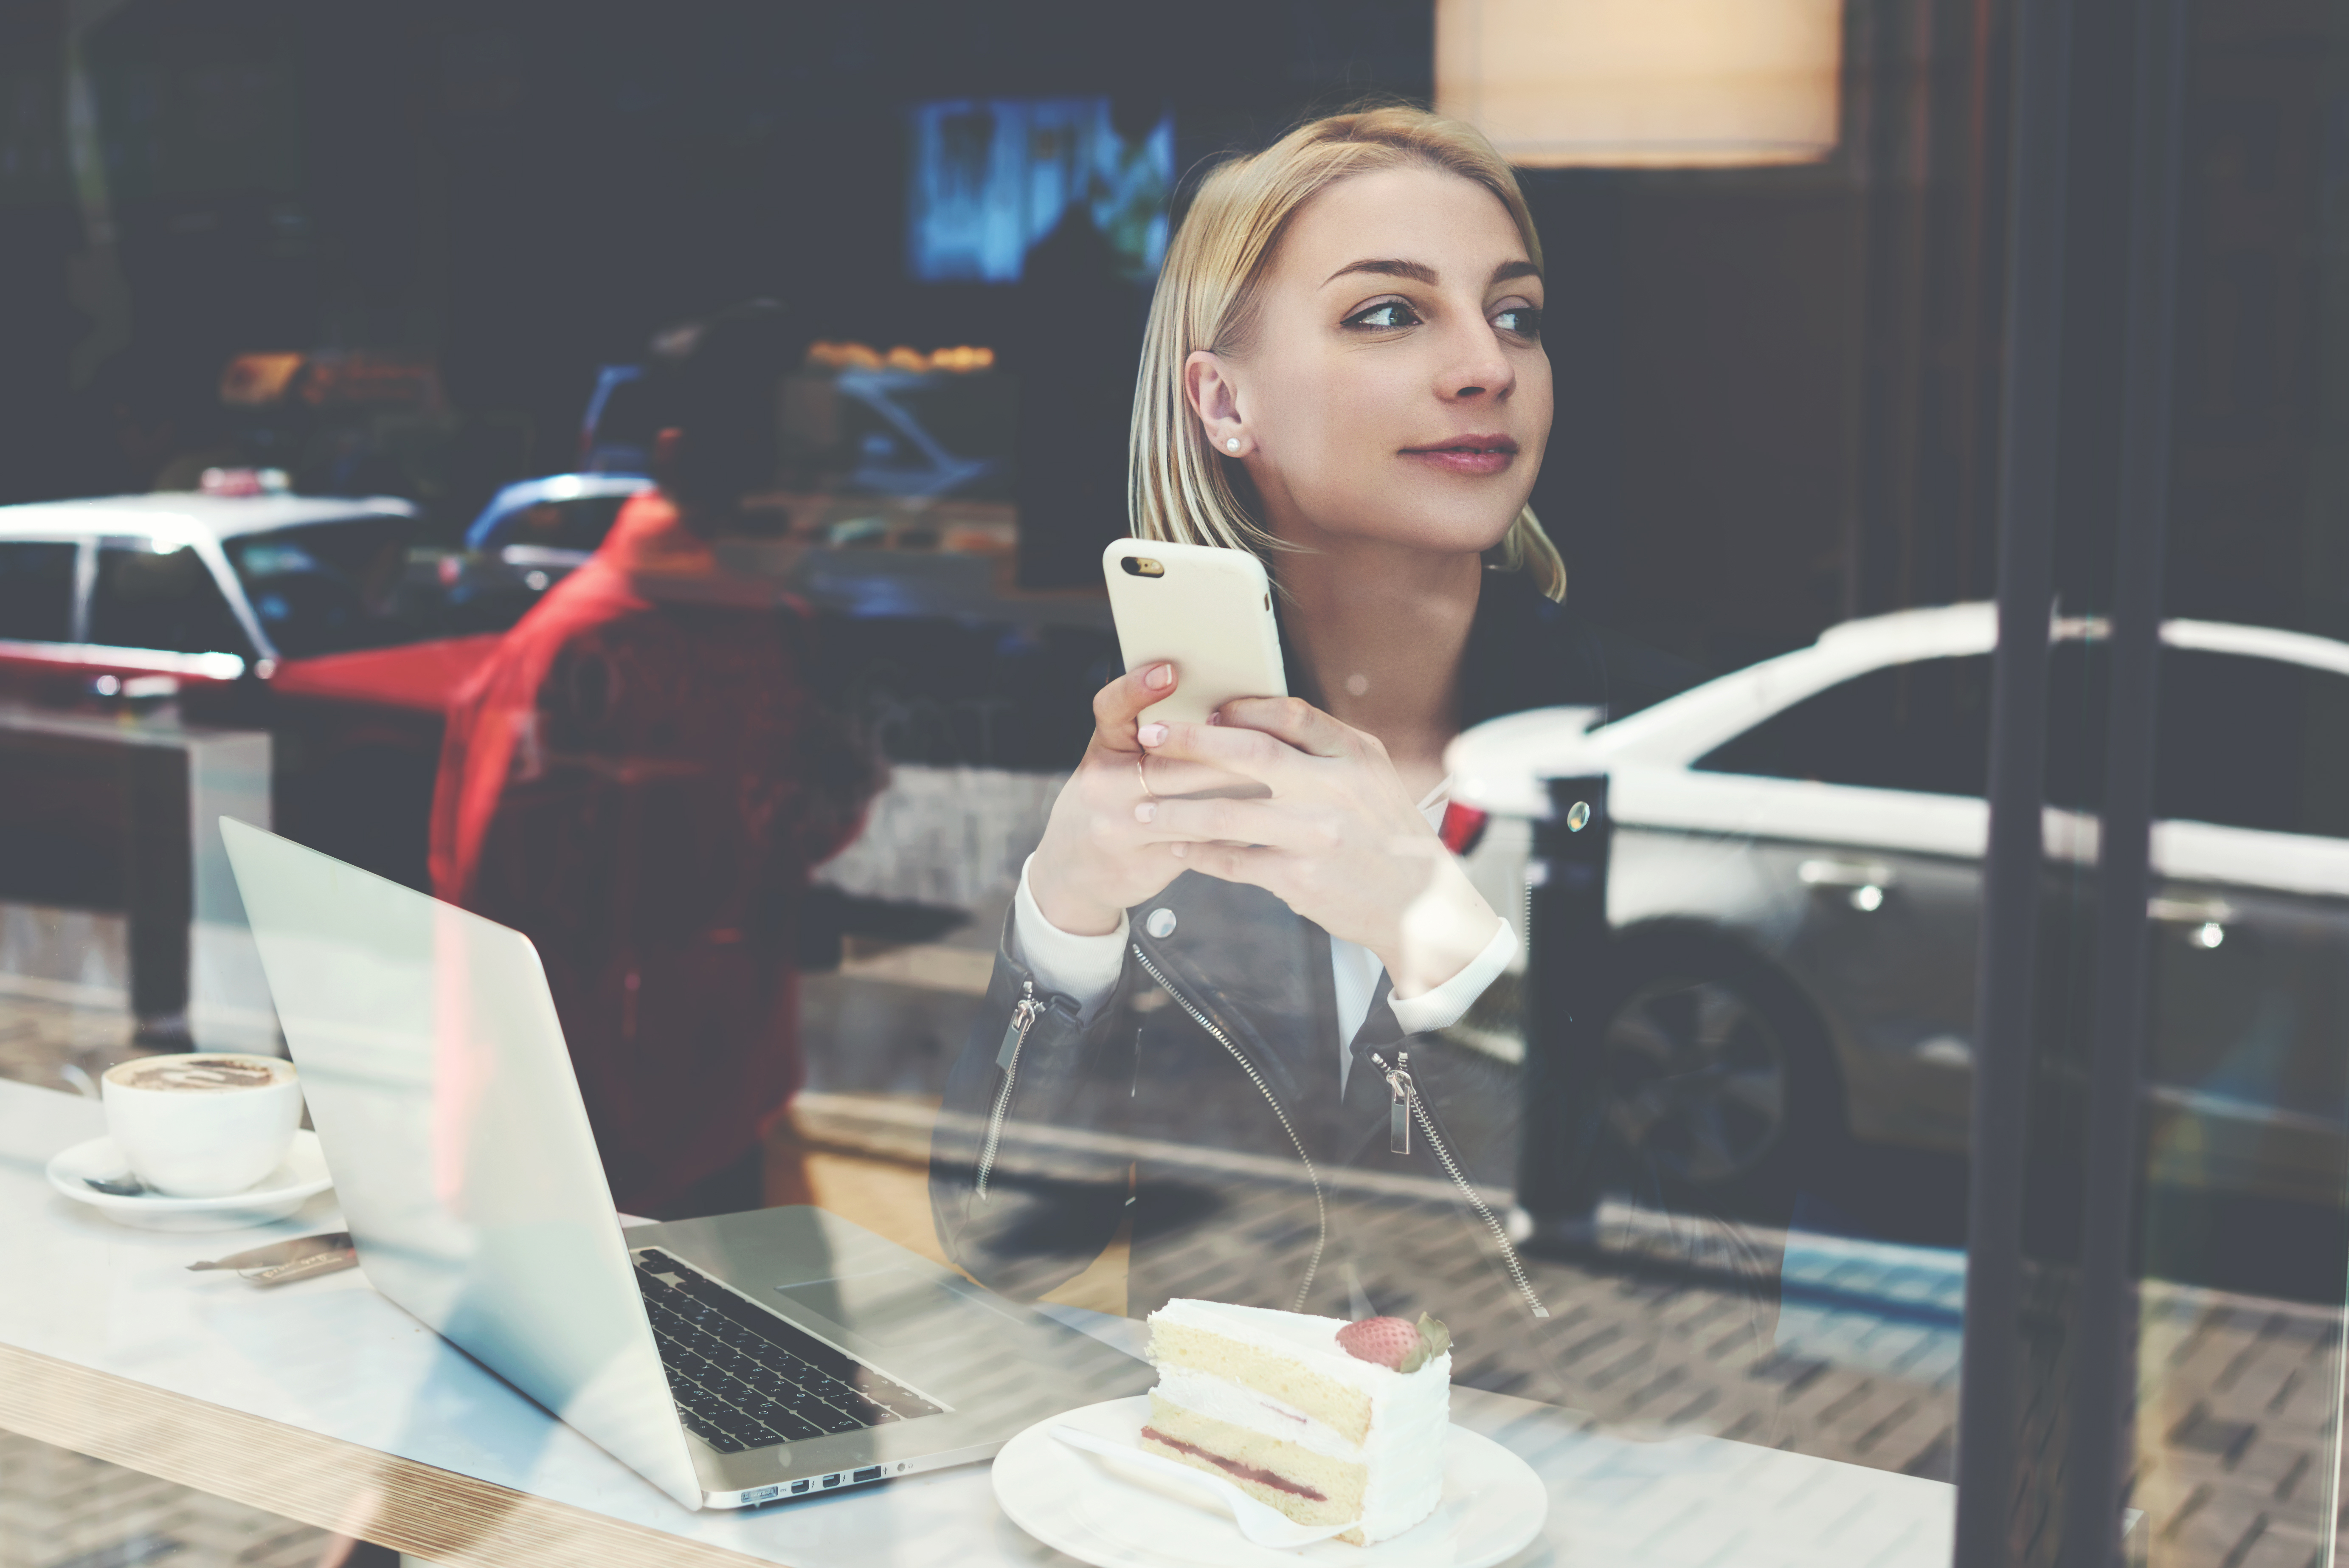 A young blonde woman is working on a laptop at a cafe. She holds her phone in hand and gazes off to the side, contemplating something with a content look on her face.